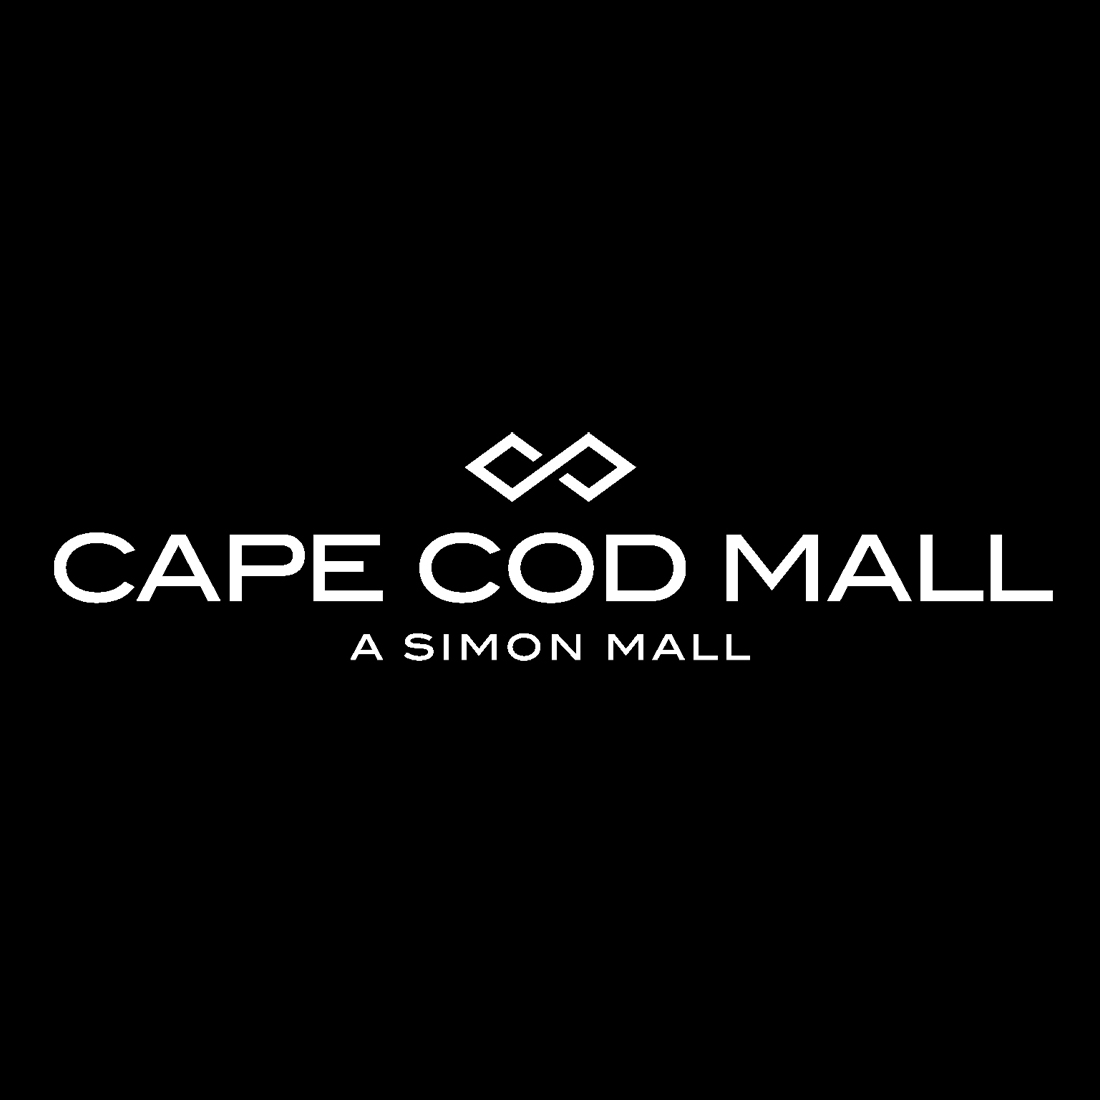 Cape Cod Mall In Hyannis, MA